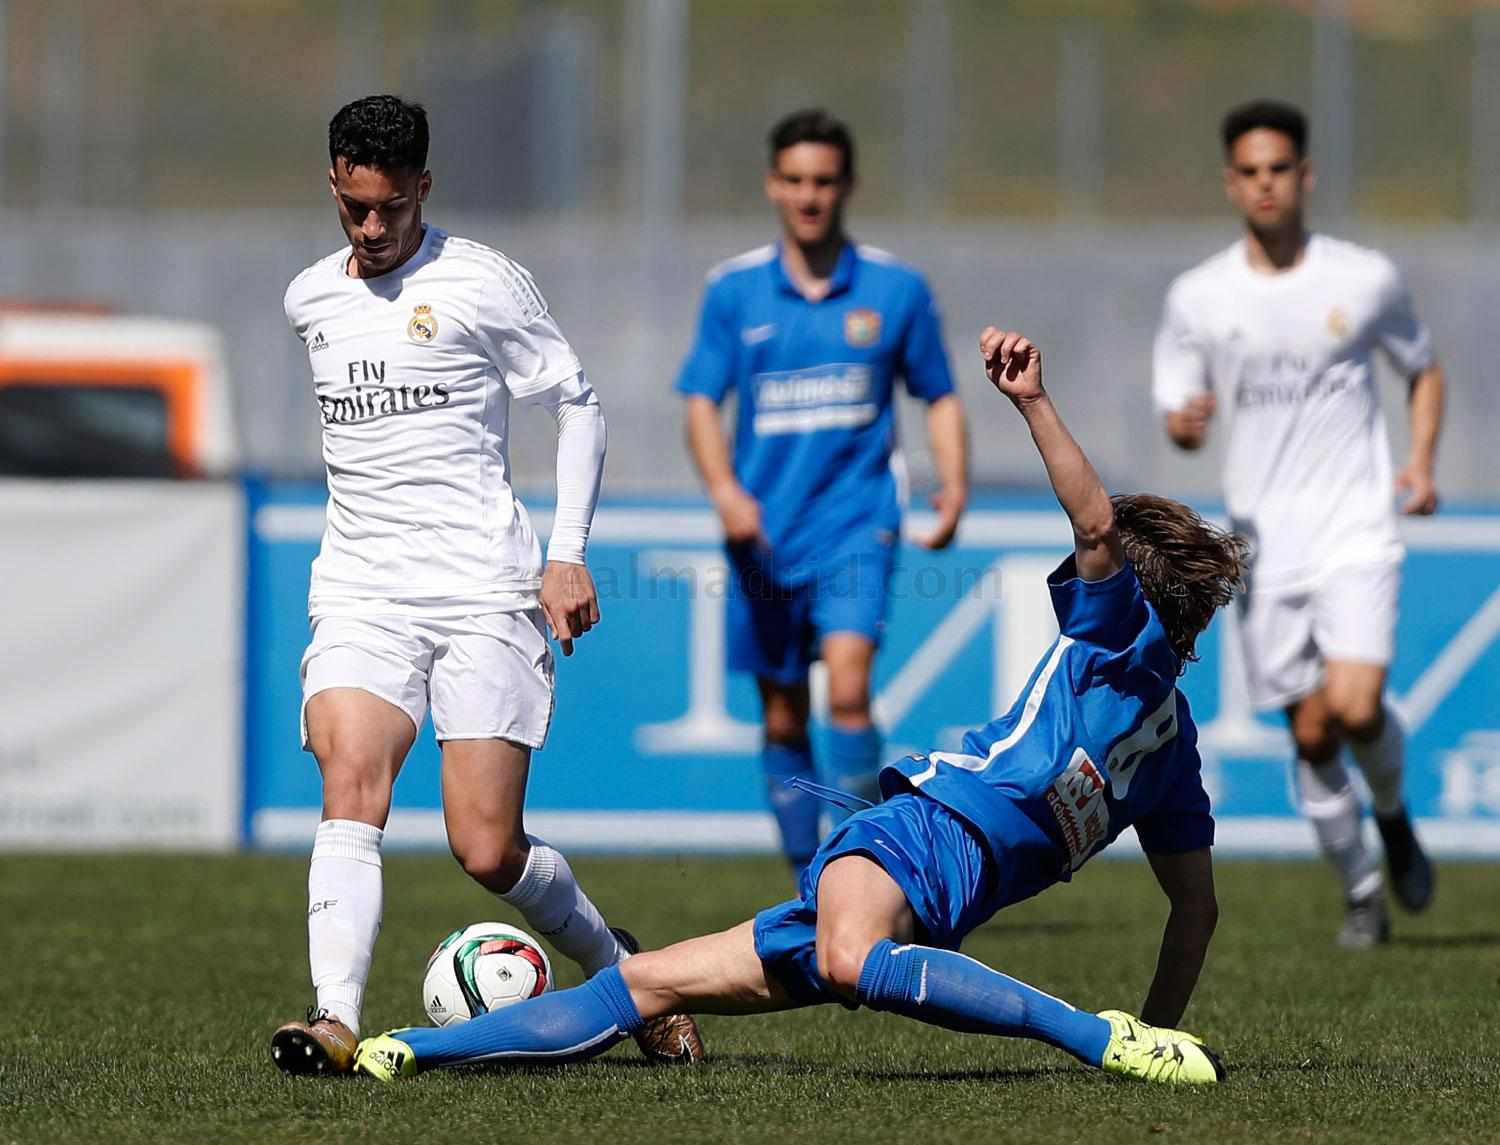 Real Madrid - Fuenlabrada - Real Madrid Castilla  - 24-03-2016